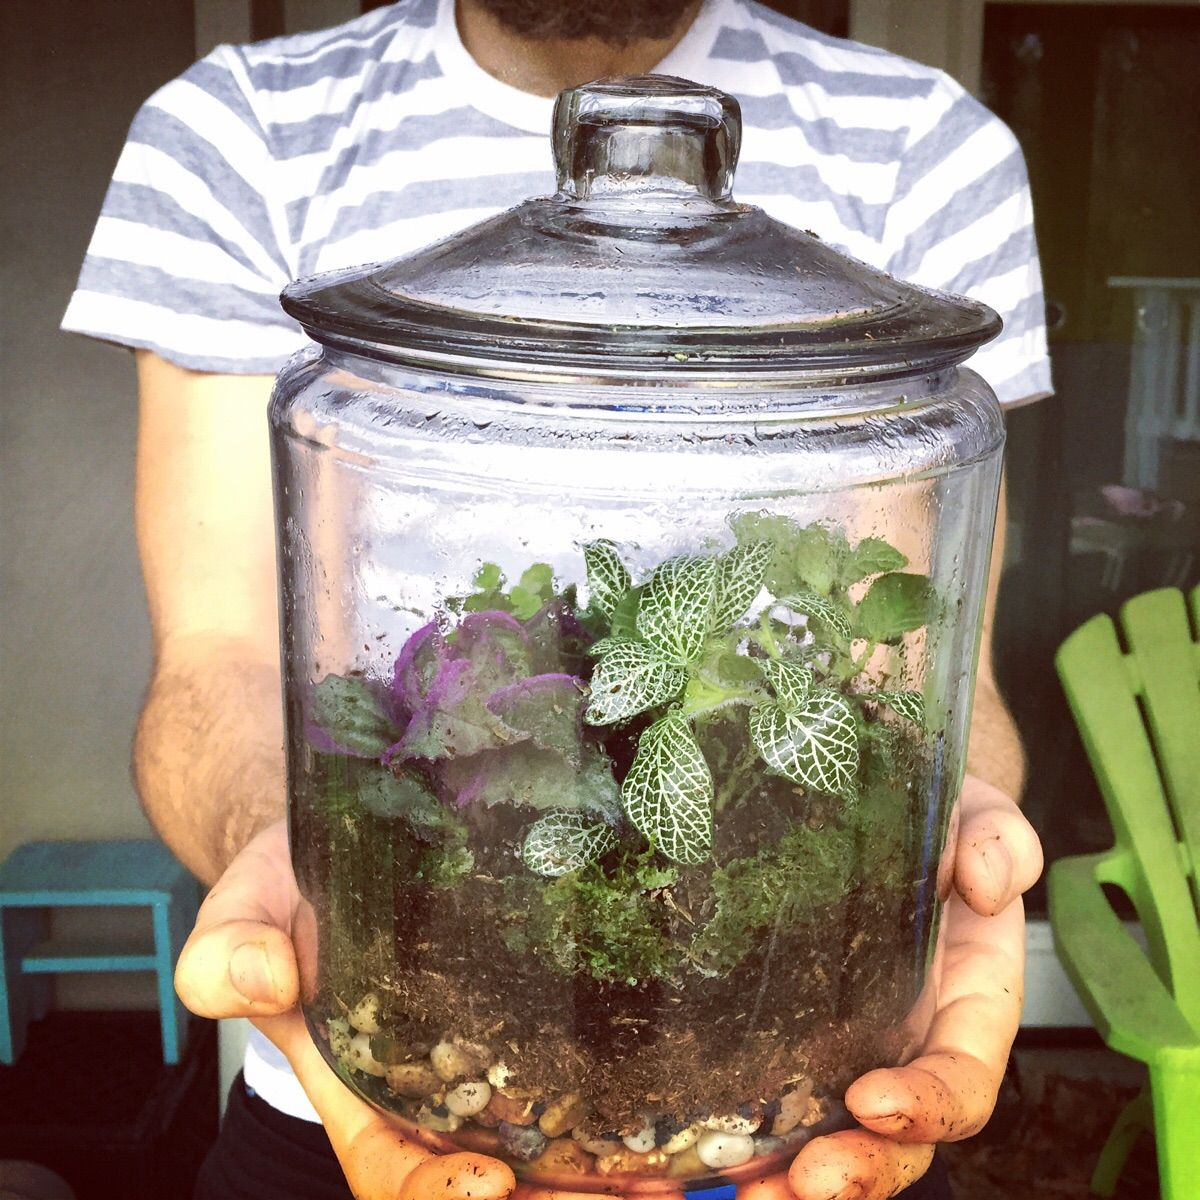 For Christmas, I put together a terrarium kit for my